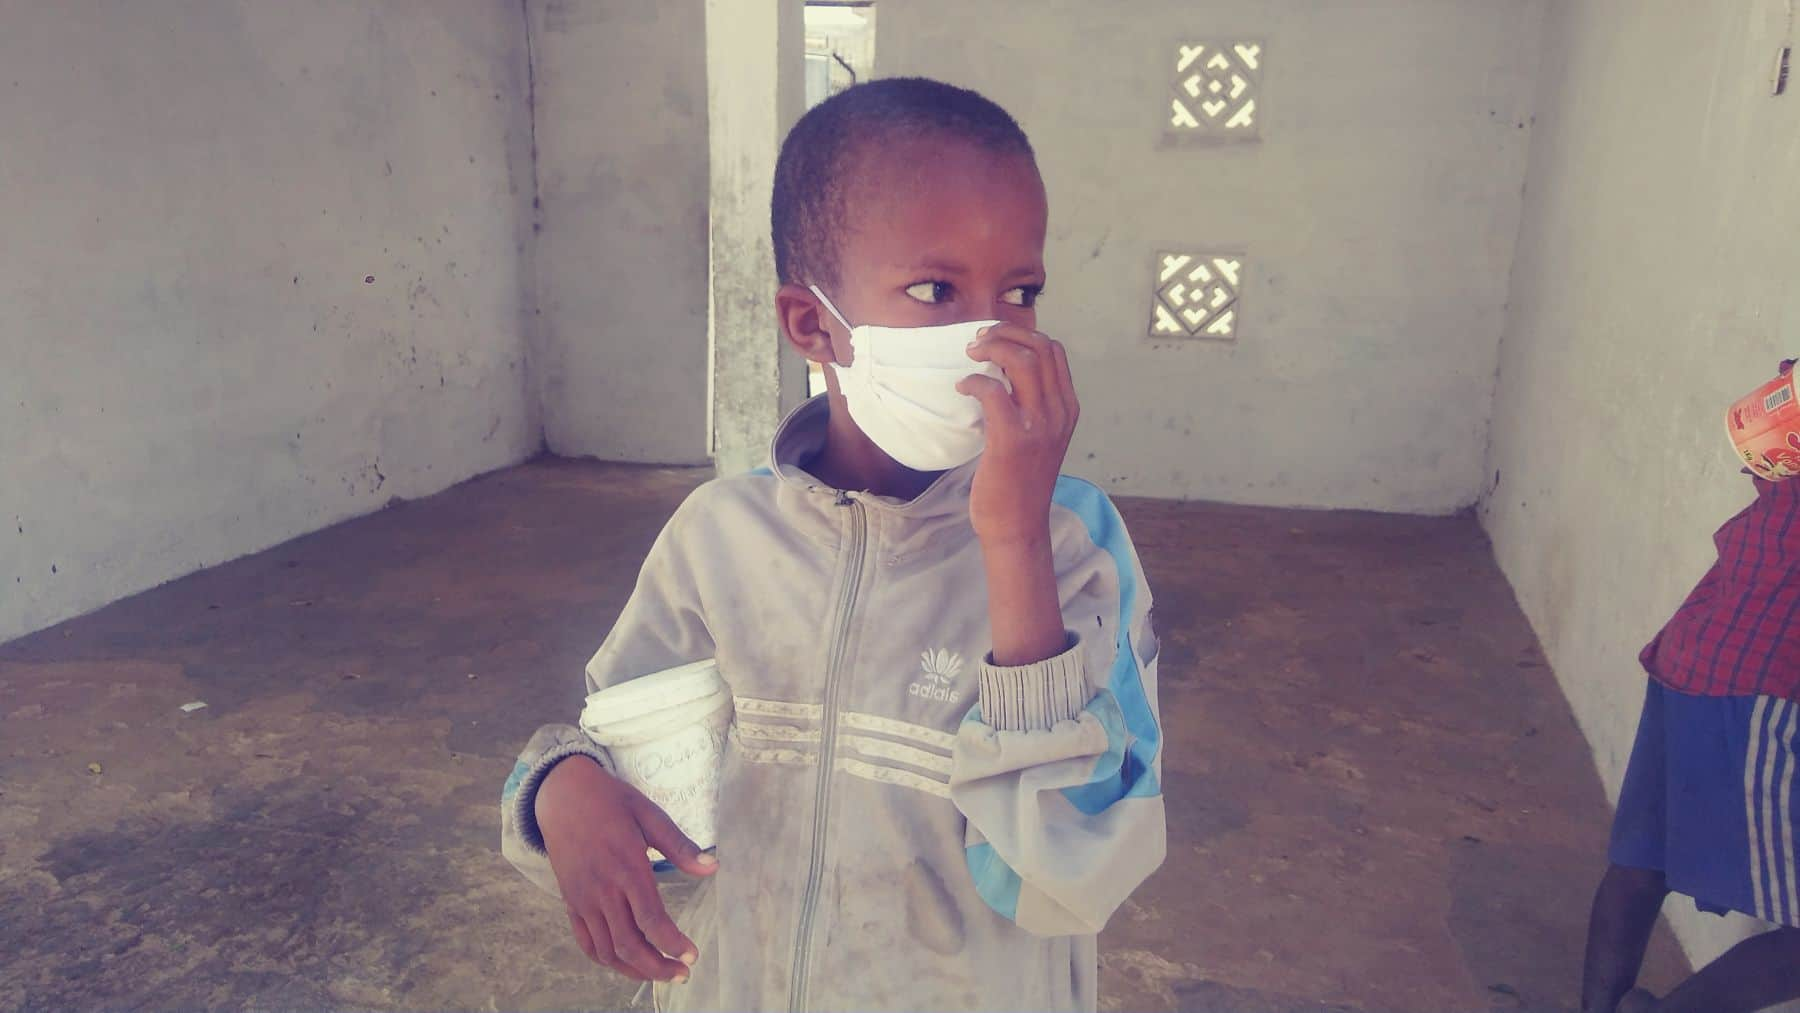 Our partners also keep the children safe with by providing them with masks.